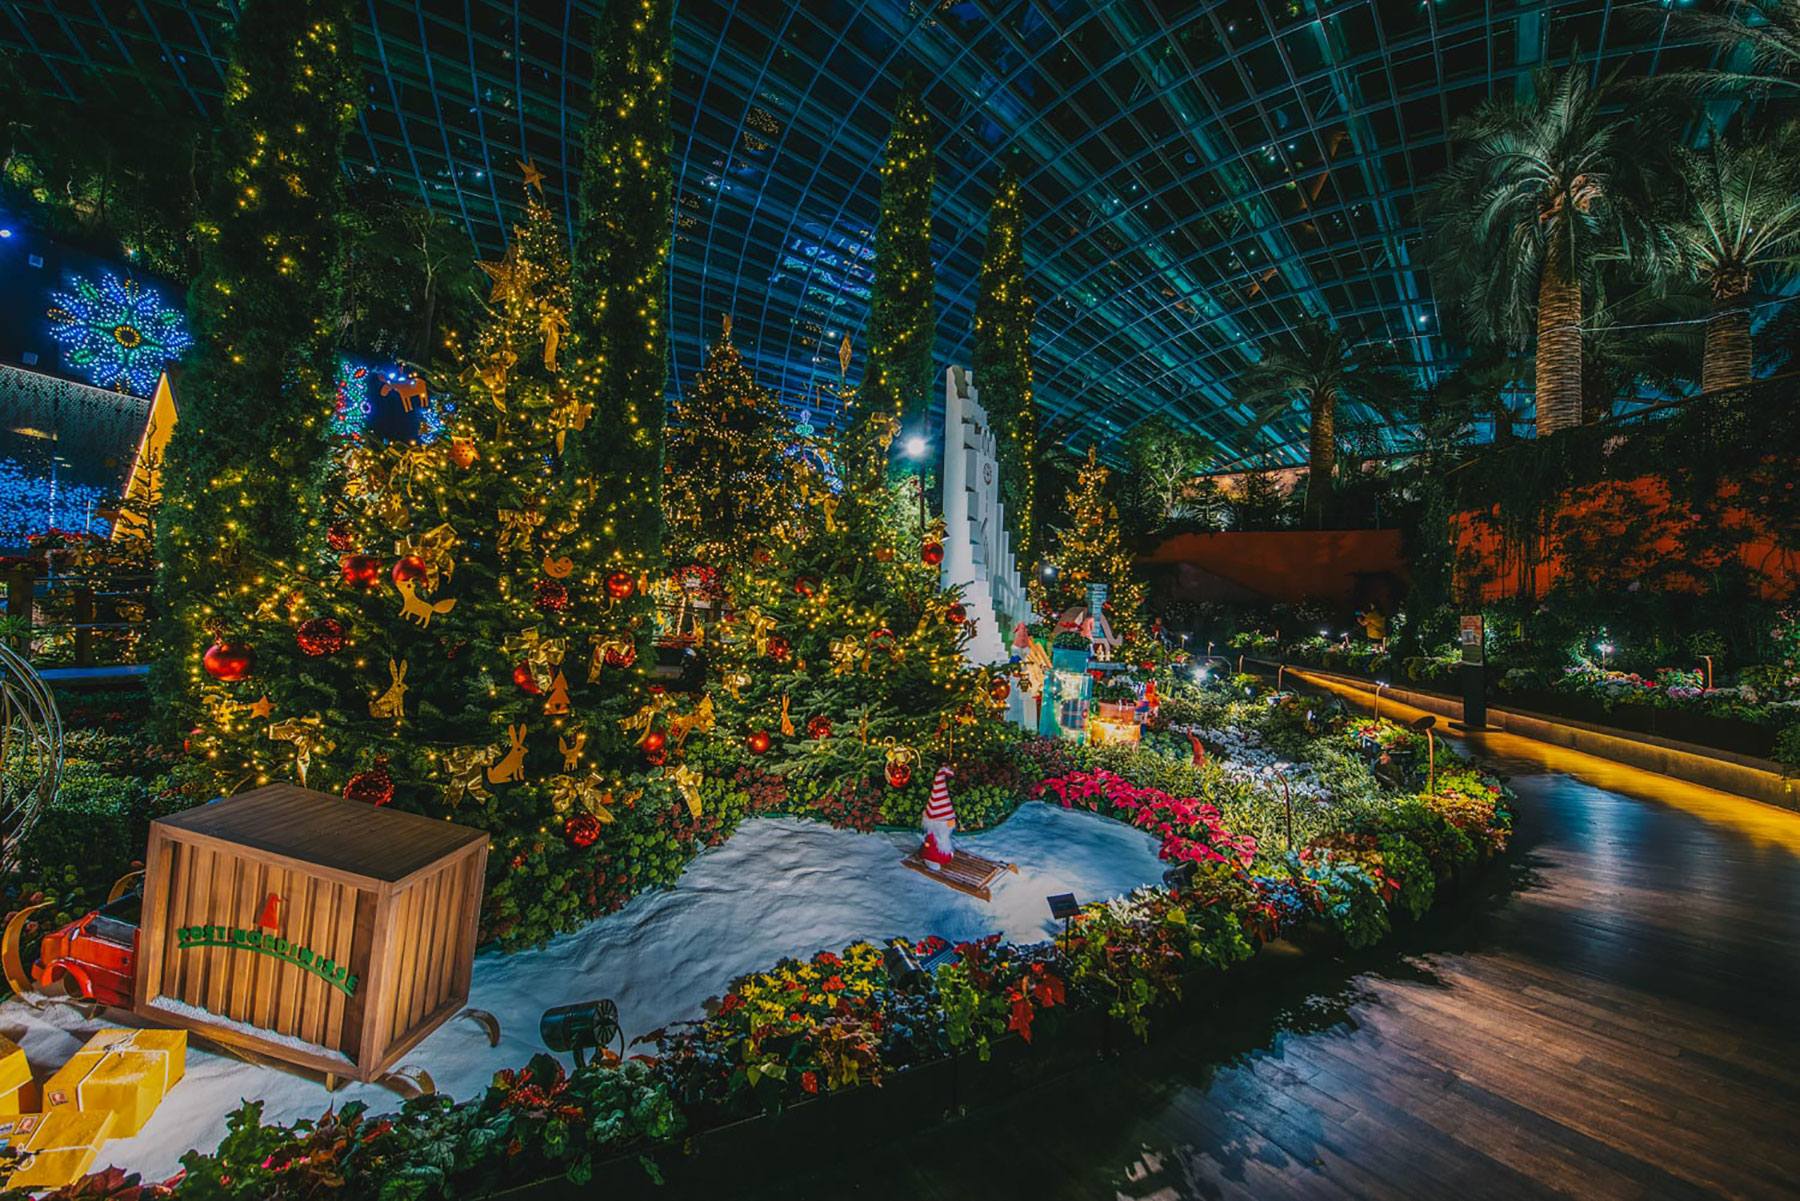 Poinsettia Wishes floral display at Gardens by the Bay